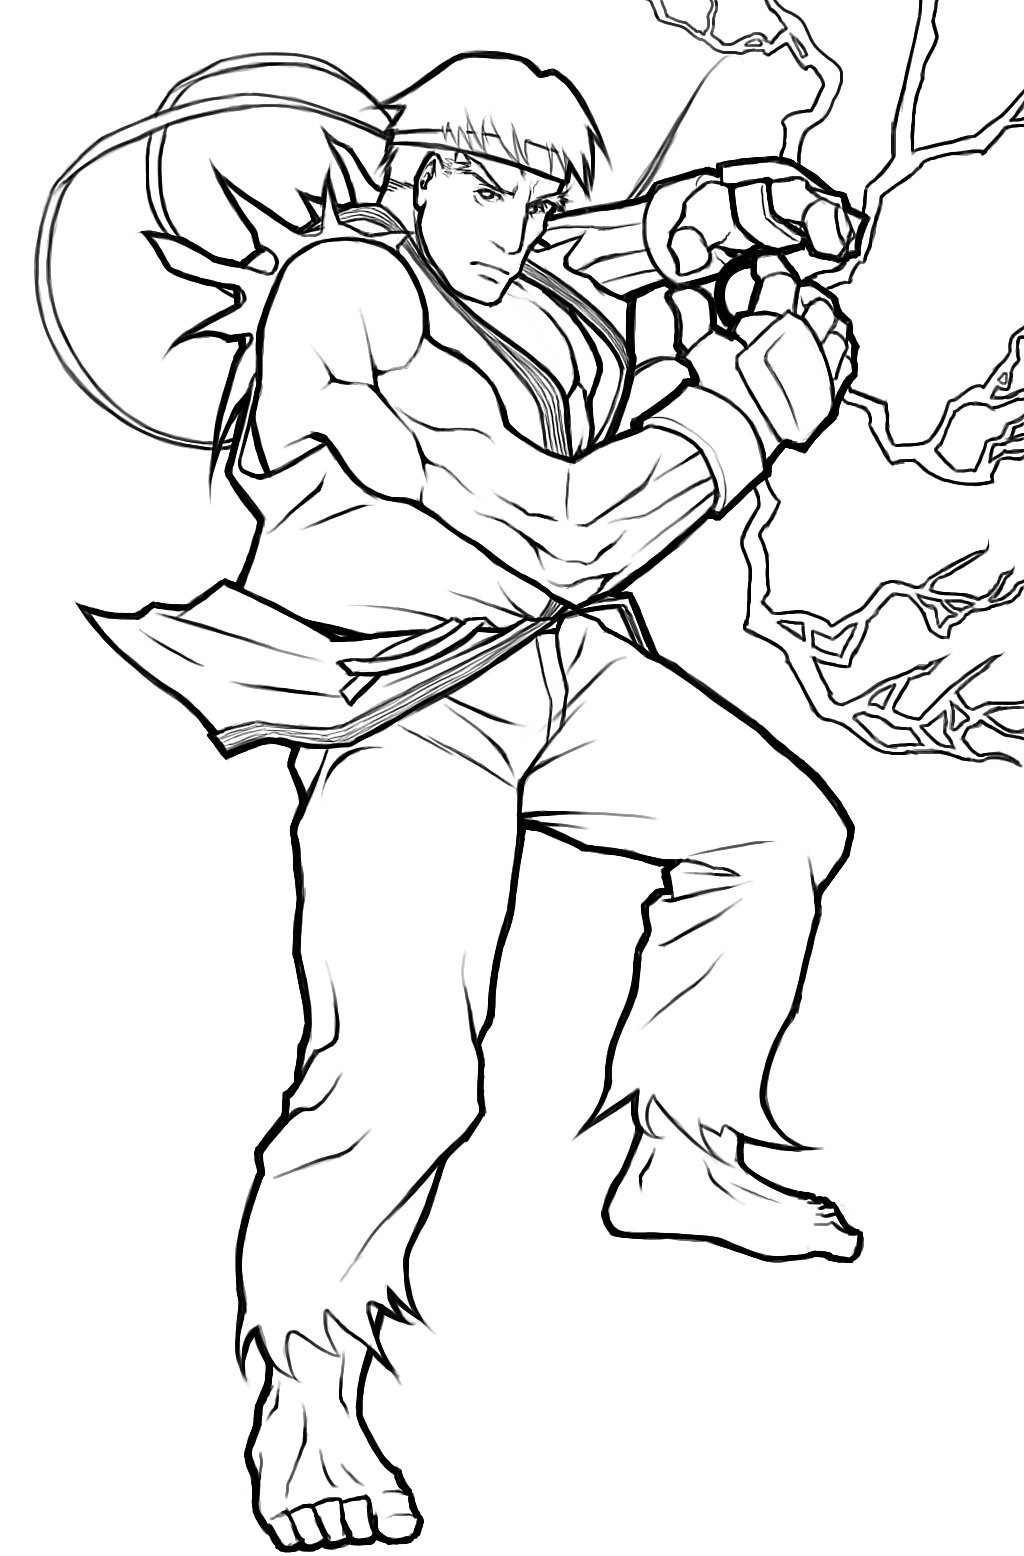 Street Fighter Coloring Pages - Coloring Home